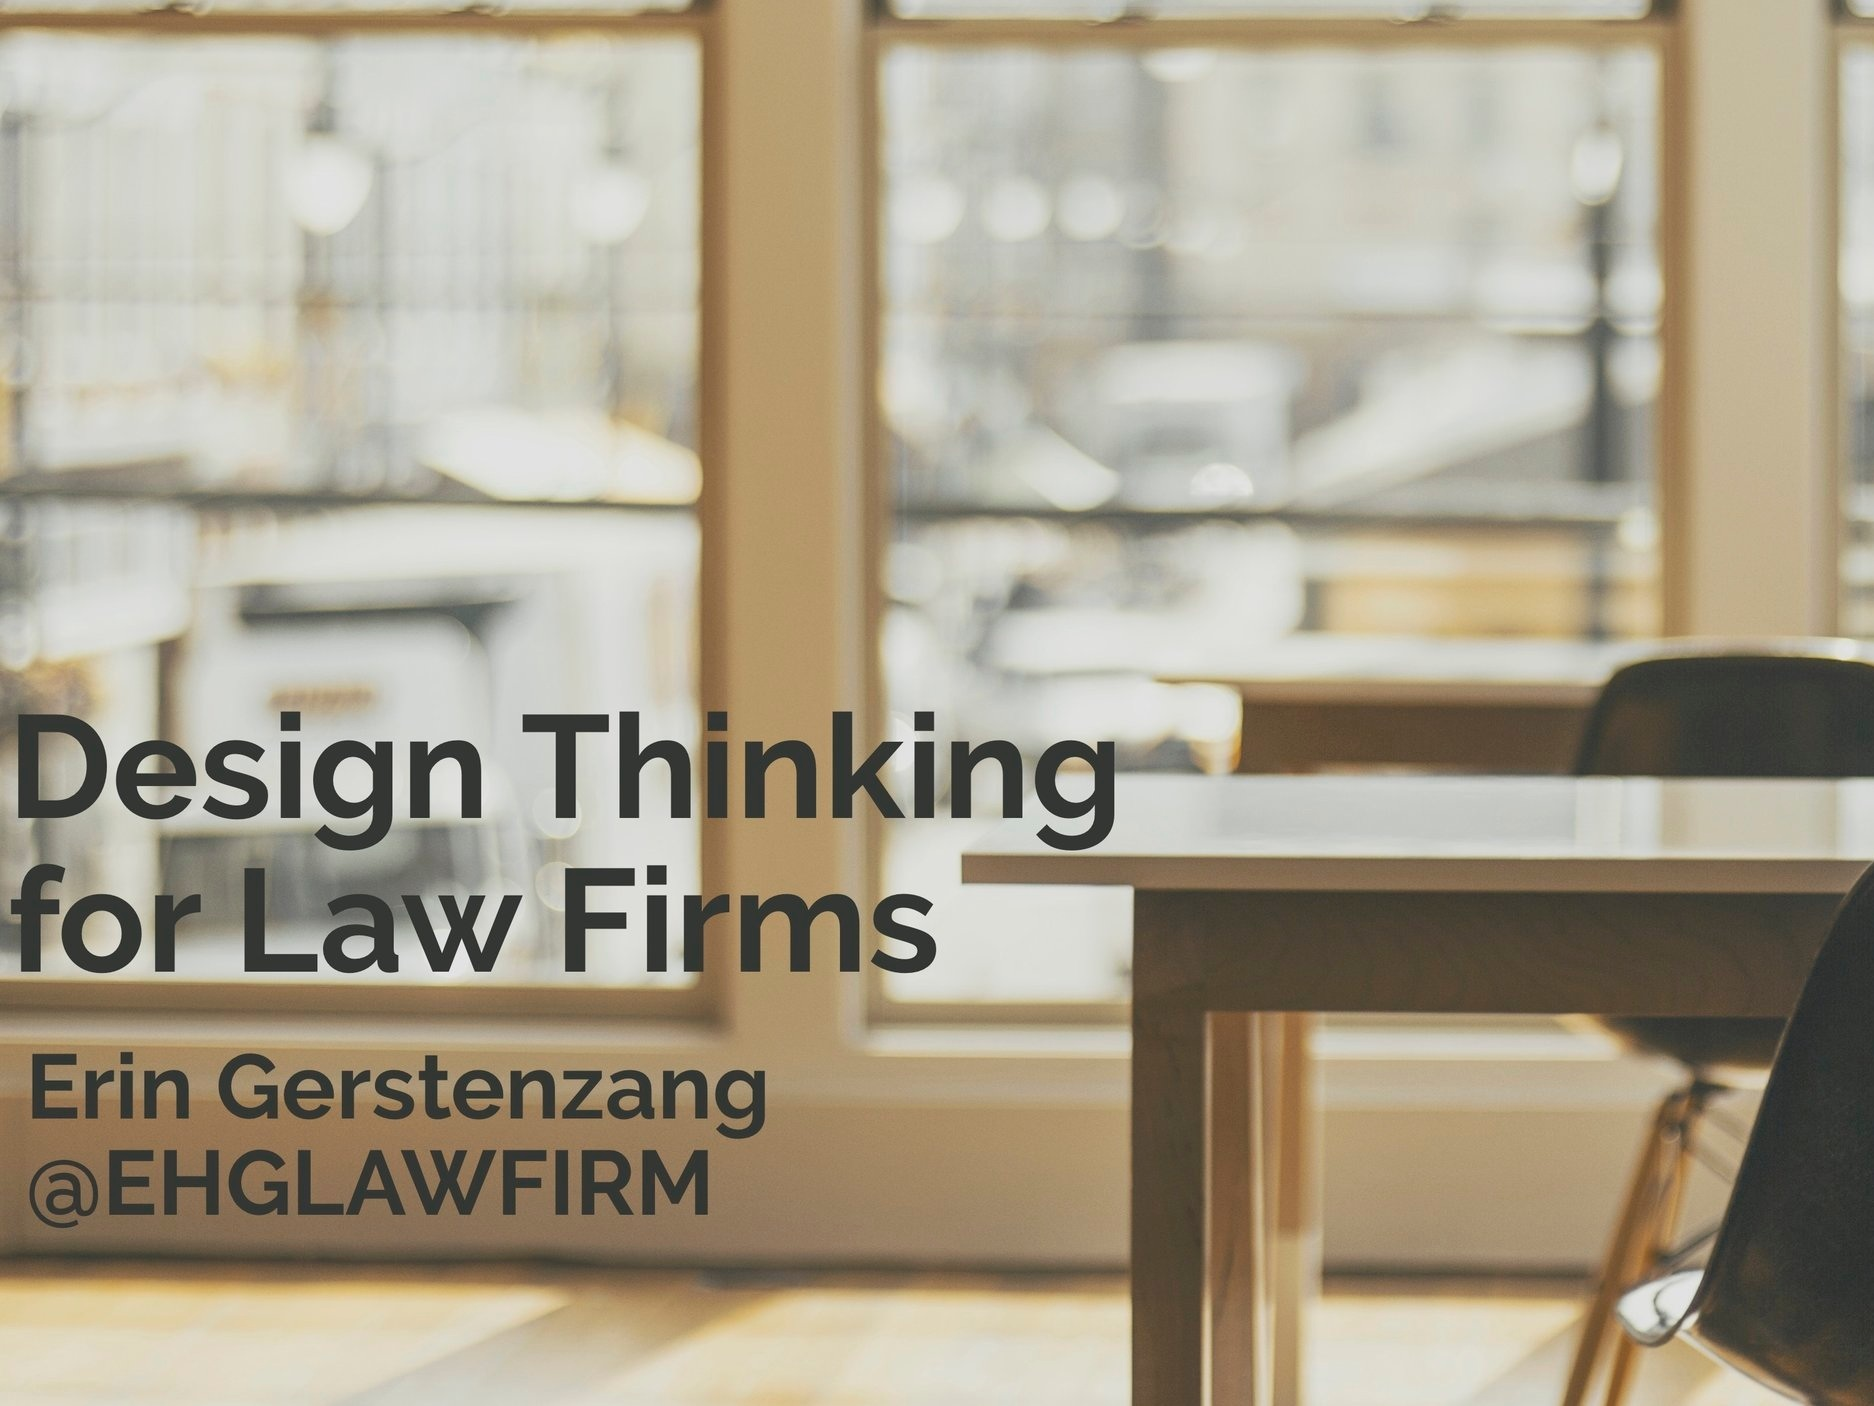 design thinking for law firms title.jpg